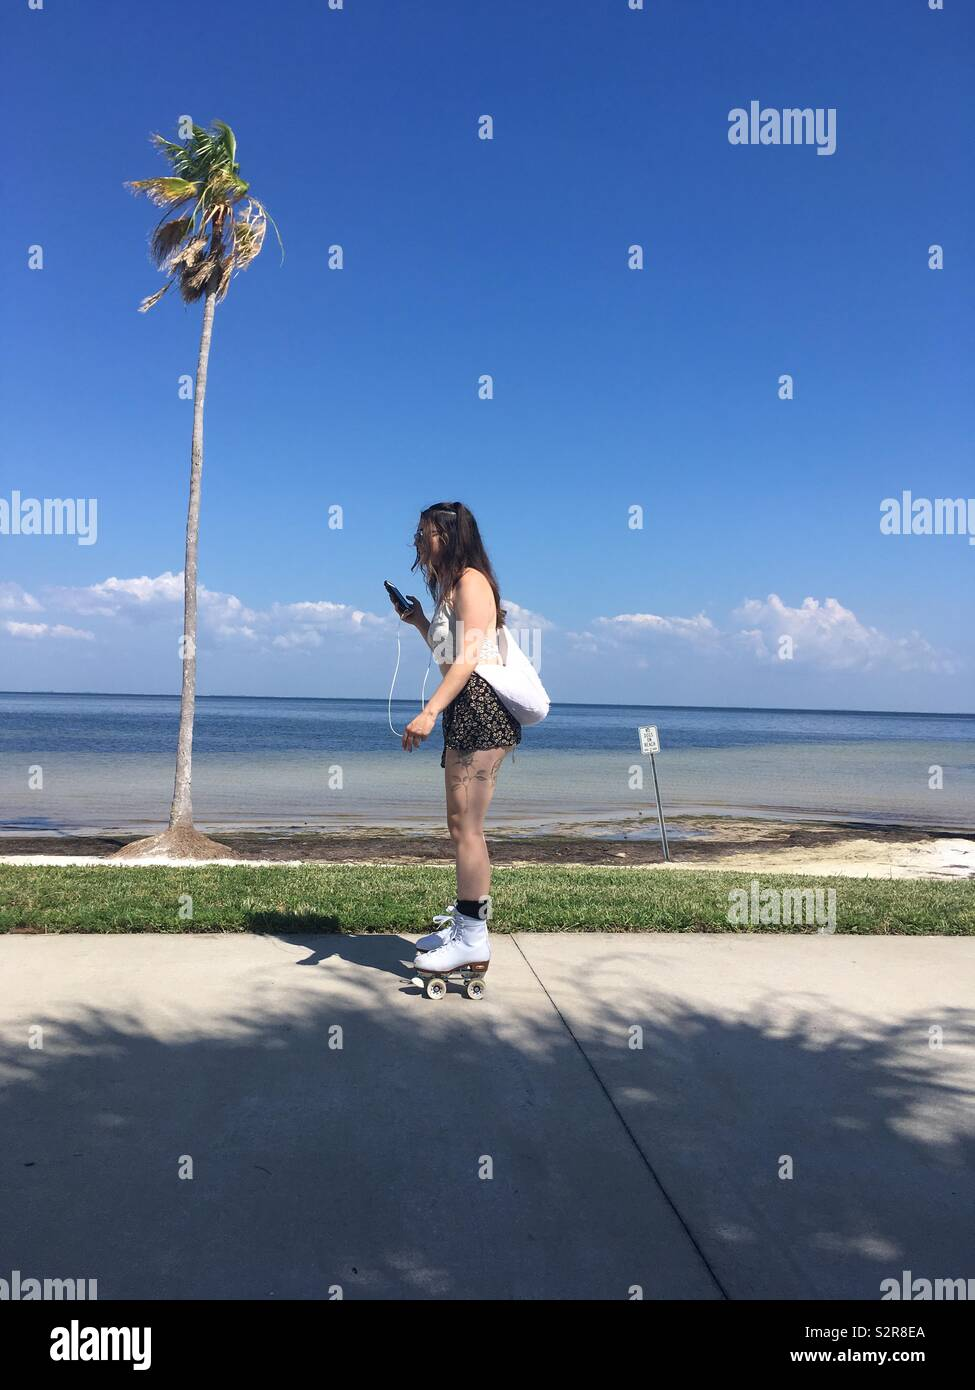 Woman roller skating past palm tree using cell phone - Stock Image